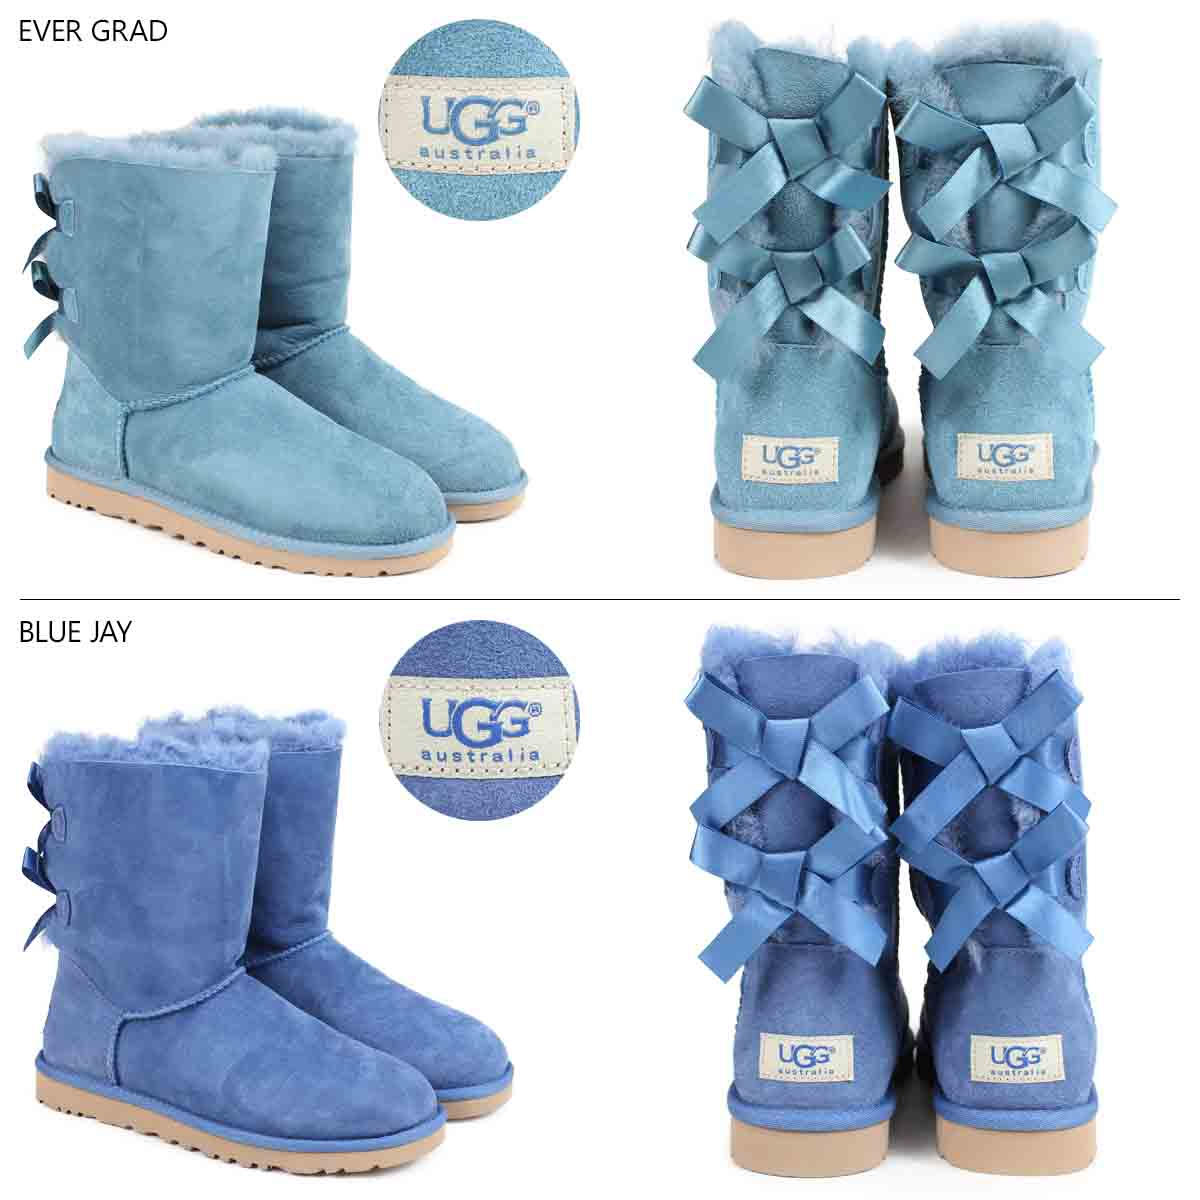 9a050649d02 UGG UGG Bailey bow boots WOMENS BAILEY BOW 1002954 ladies